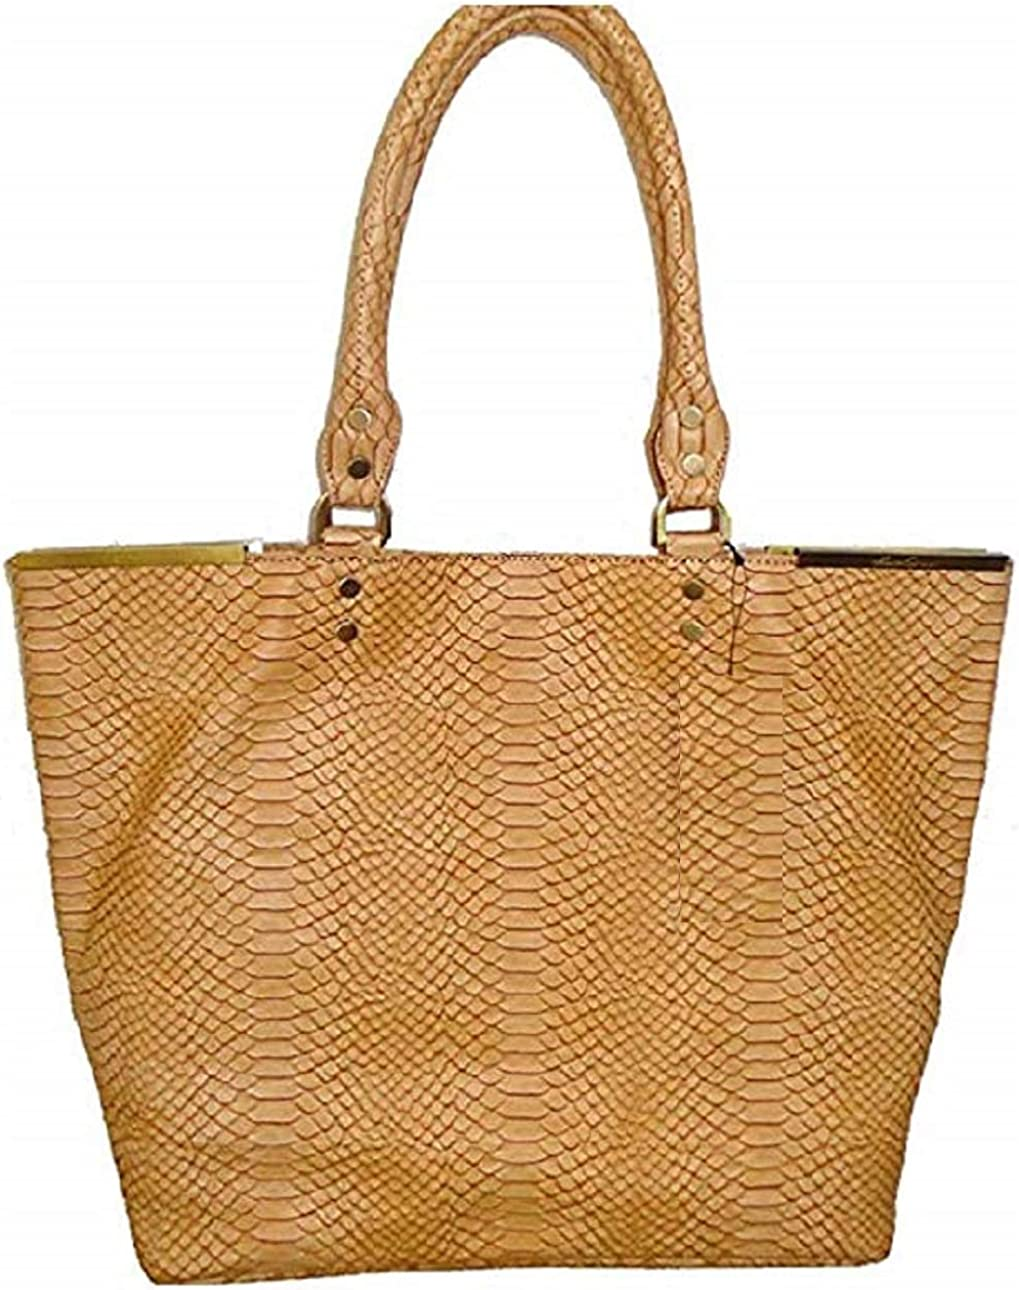 Very popular Kenneth Cole Rapid rise Handle It Satchel Camel Over